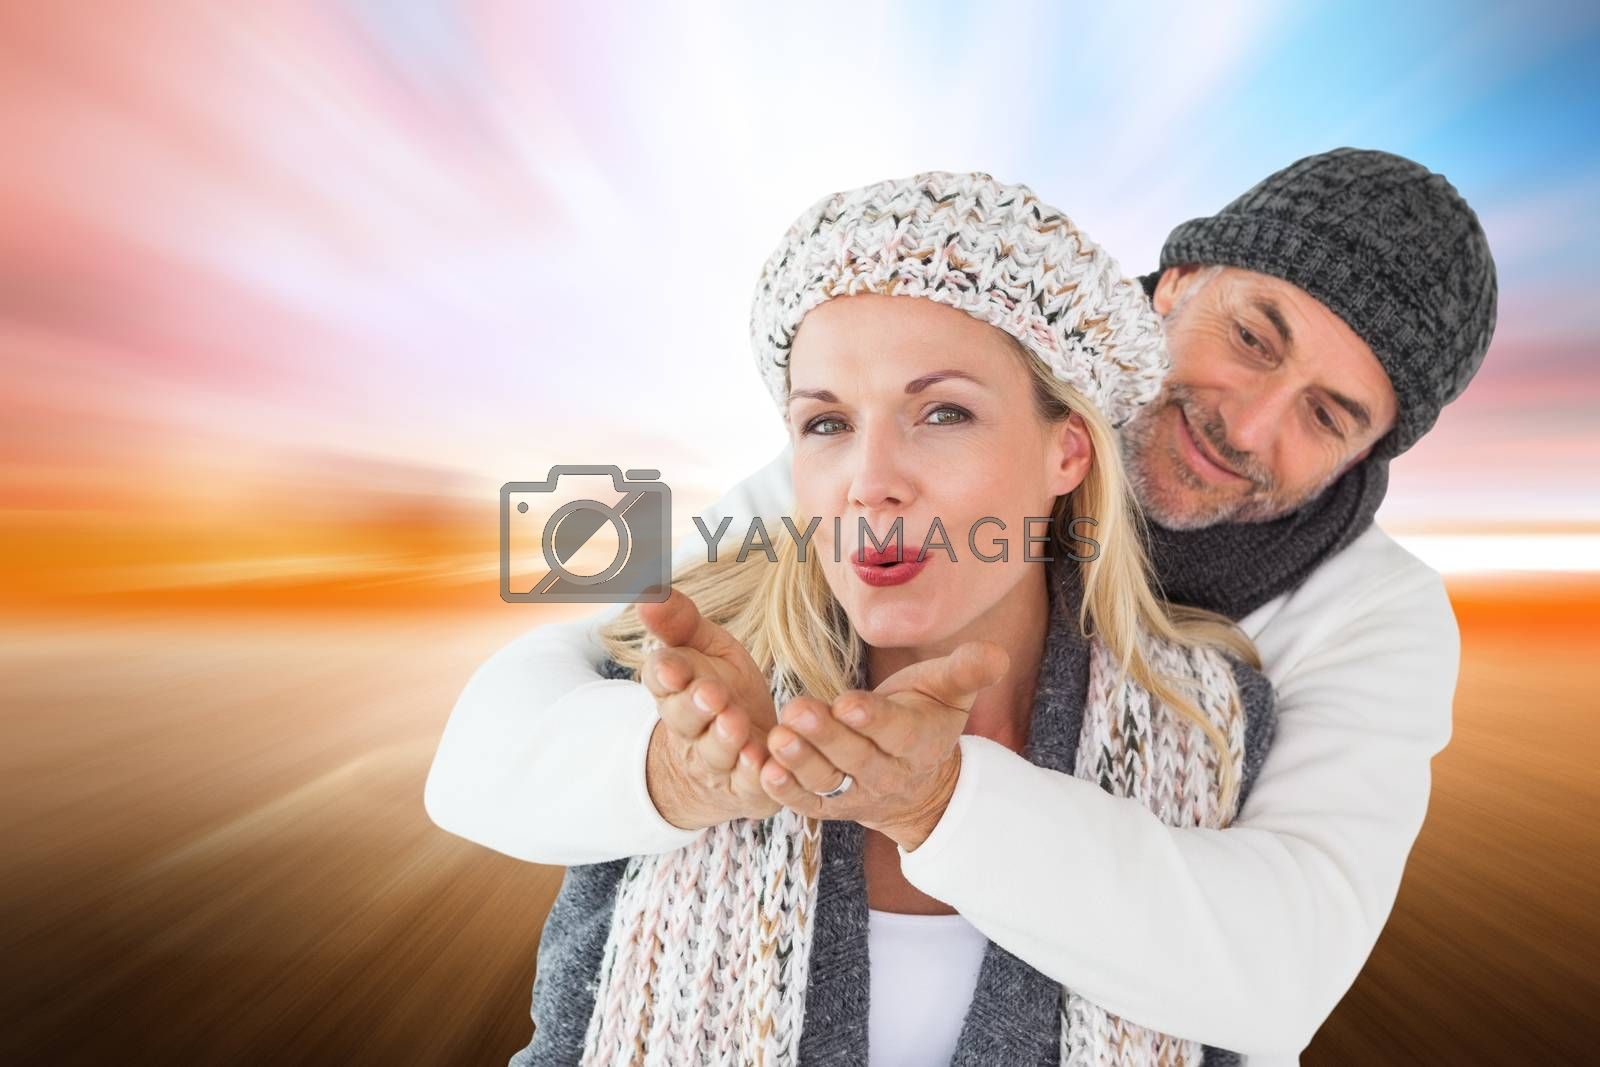 Smiling couple in winter fashion posing against field with light wave